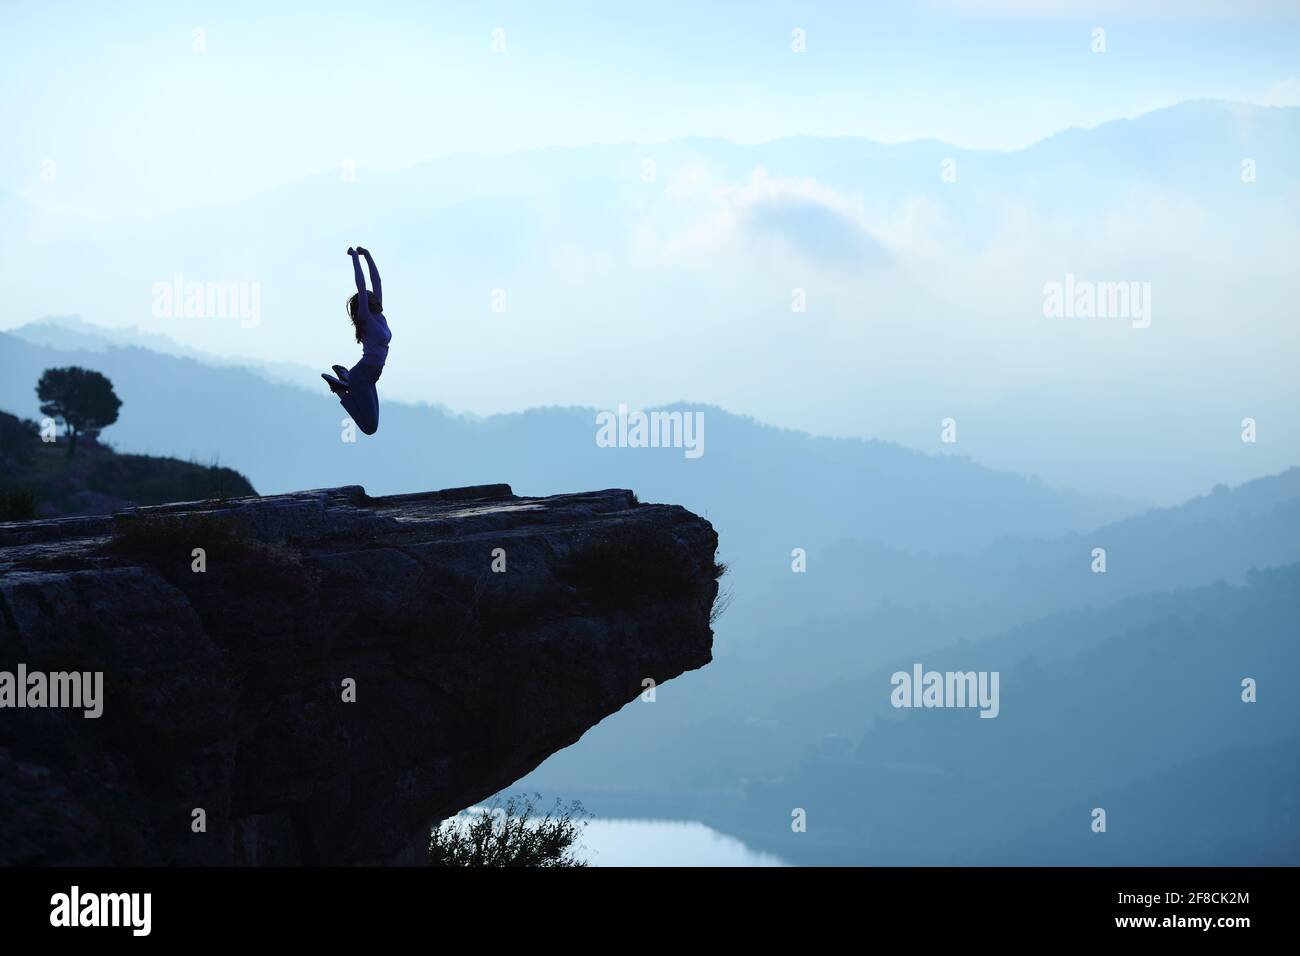 Backlight portrait of a woman silhouette jumping in the top of a cliff on blue landscape Stock Photo